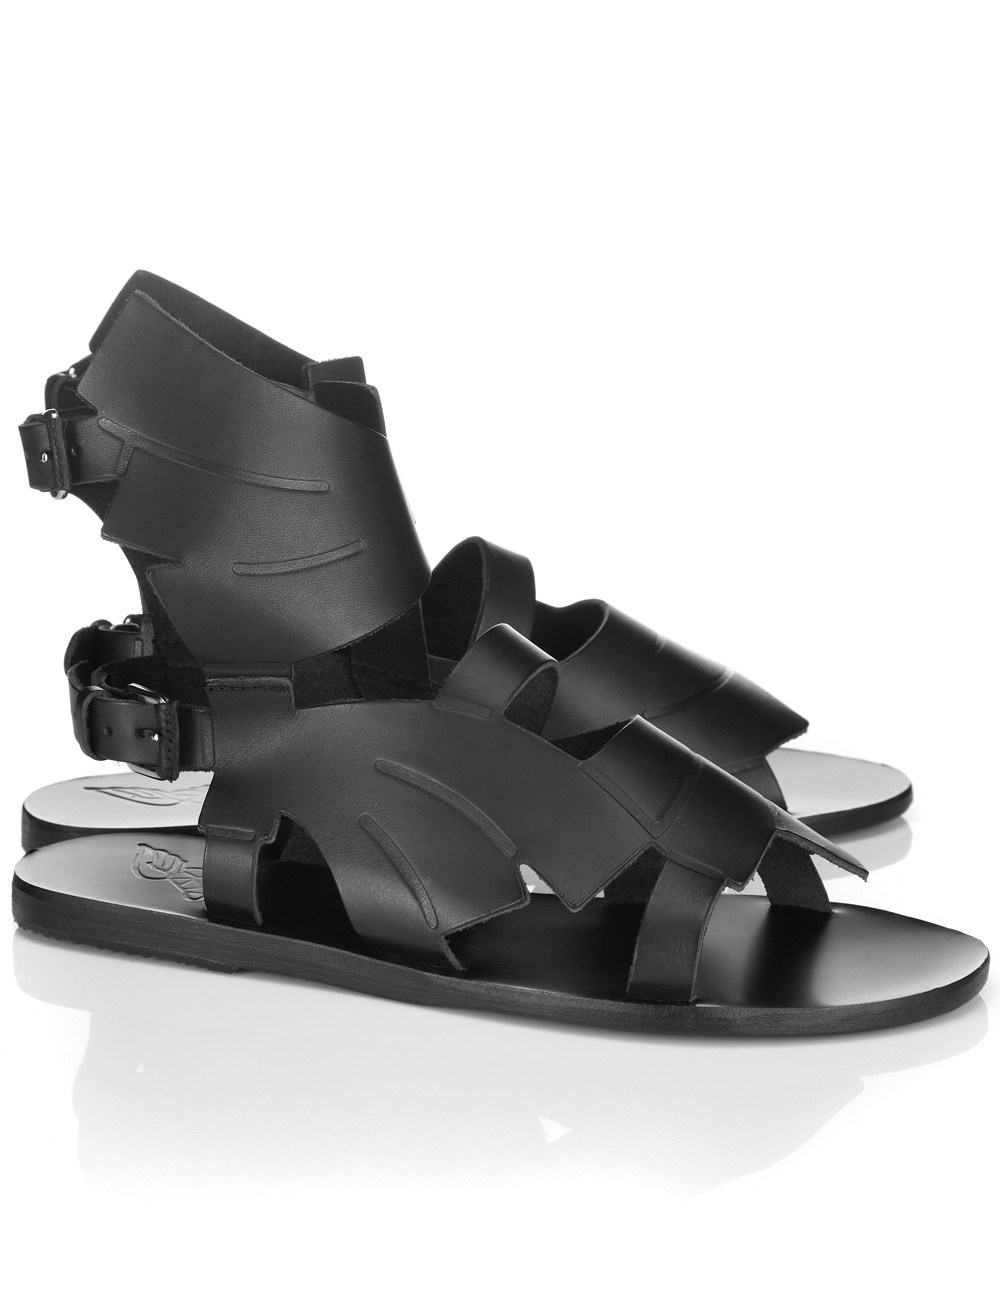 Ancient greek sandals Black Leather Banana Mid Sandals in Black | Lyst